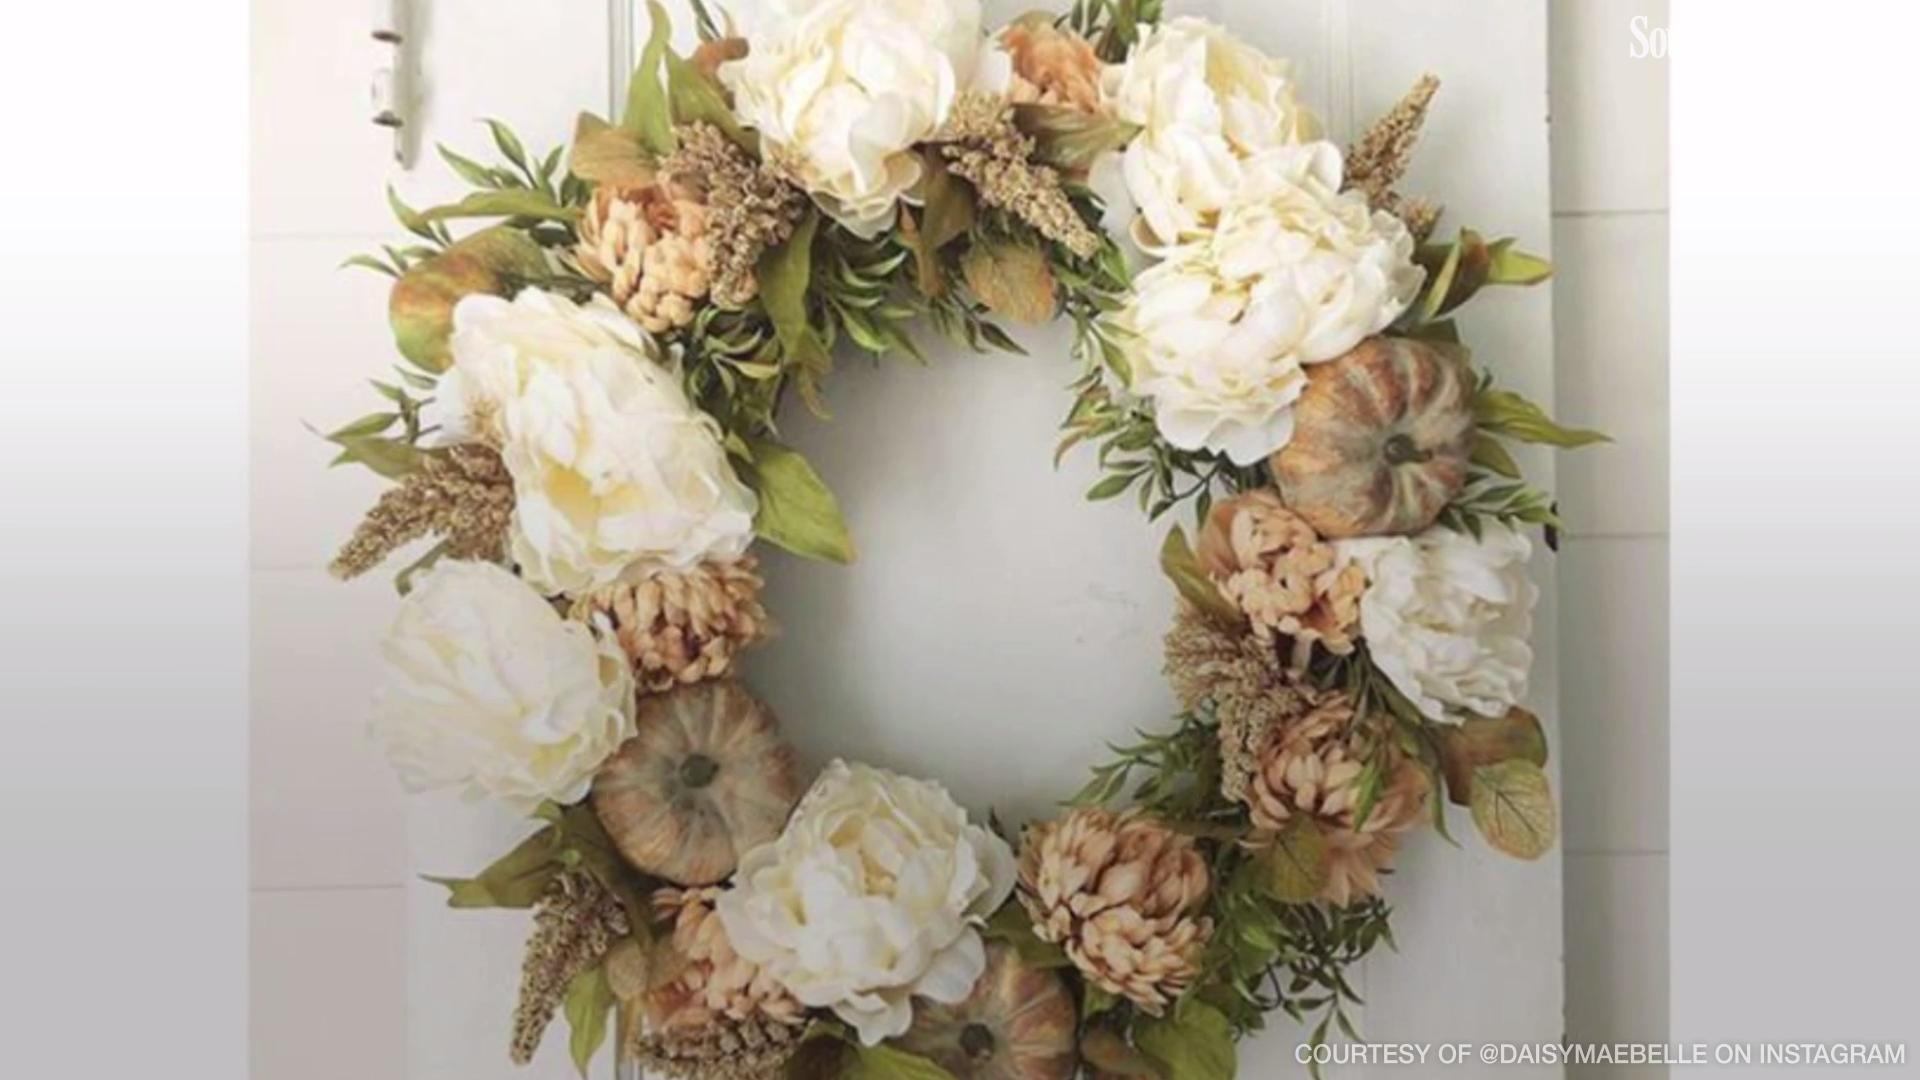 Hang up One of These Gorgeous Wreaths to Celebrate Fall